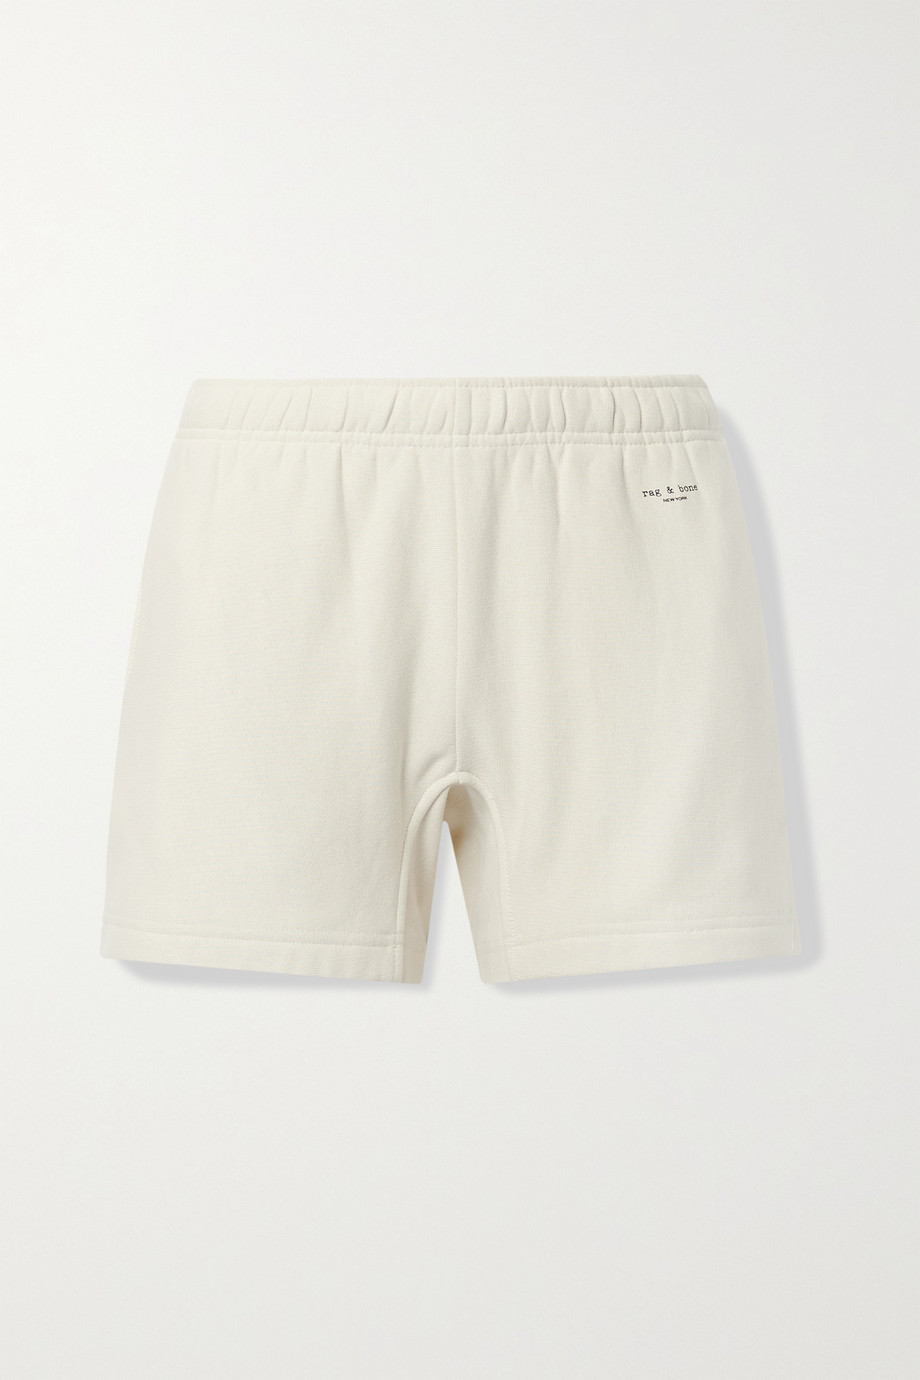 RAG & BONE + NET SUSTAIN City organic cotton-jersey shorts